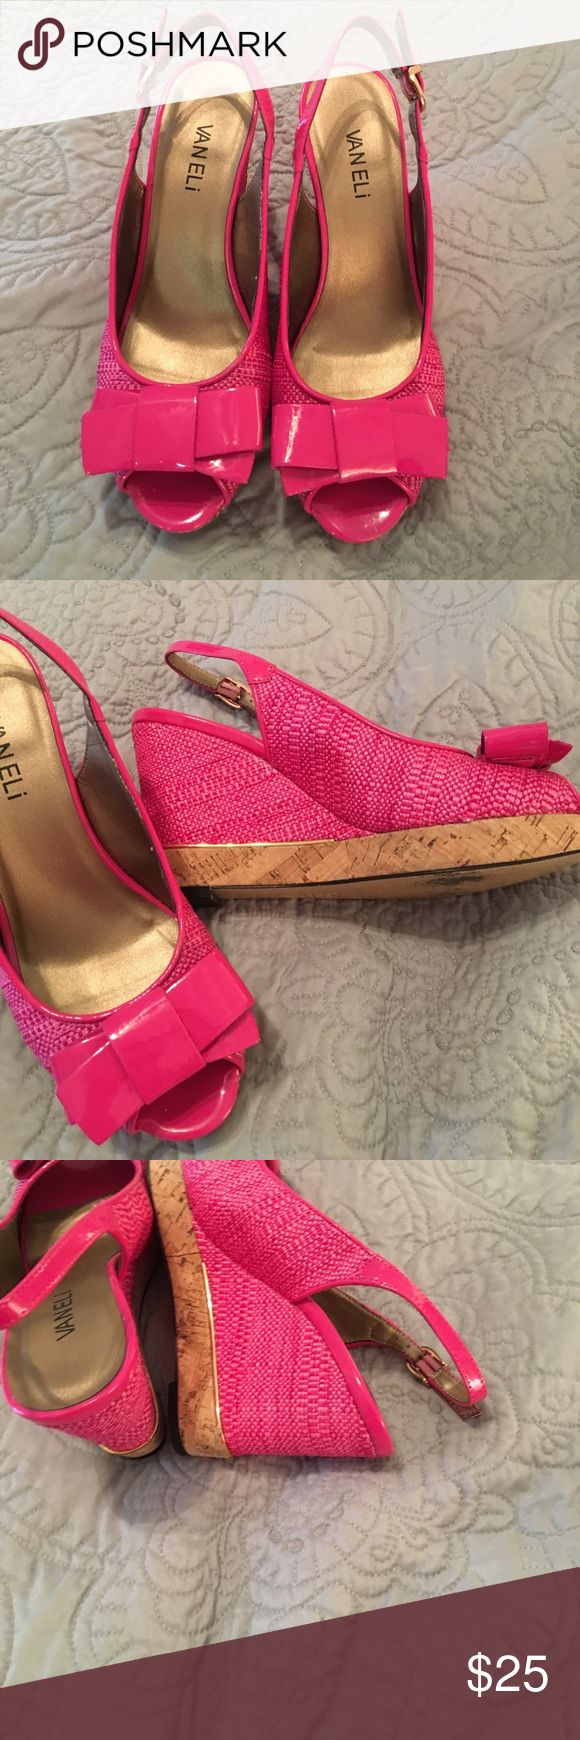 Hot pink wedge sandals Vaneli hot pink wedge sandals. Straw look with patent leather bow. Has gold trim. Very good condition. Really pretty color. Vaneli Shoes Platforms